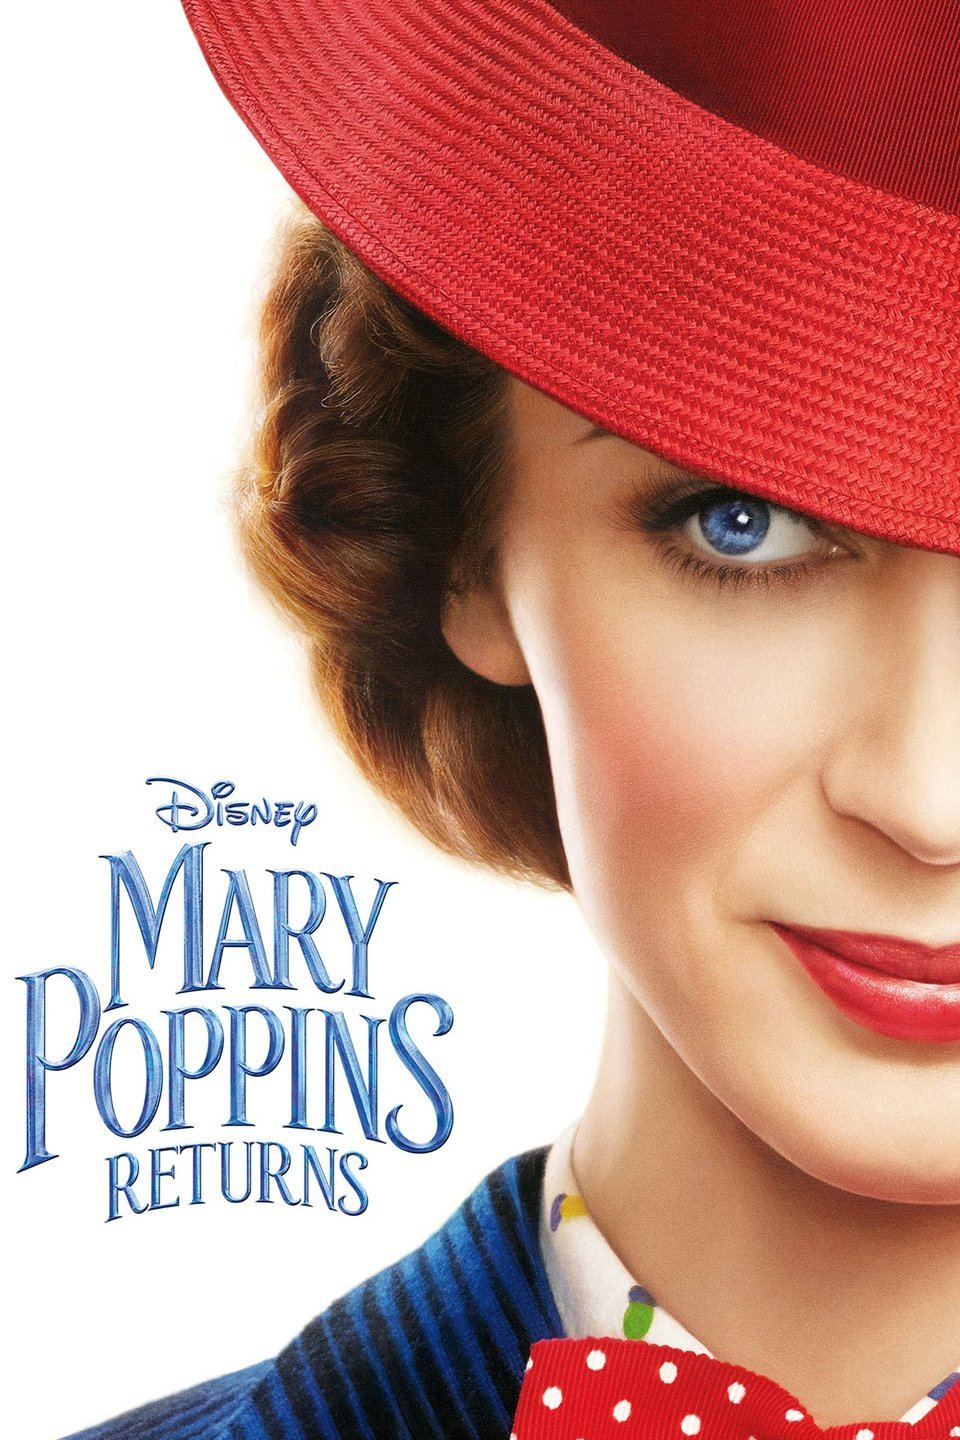 Movies @ Middletown: Mary Poppins Returns